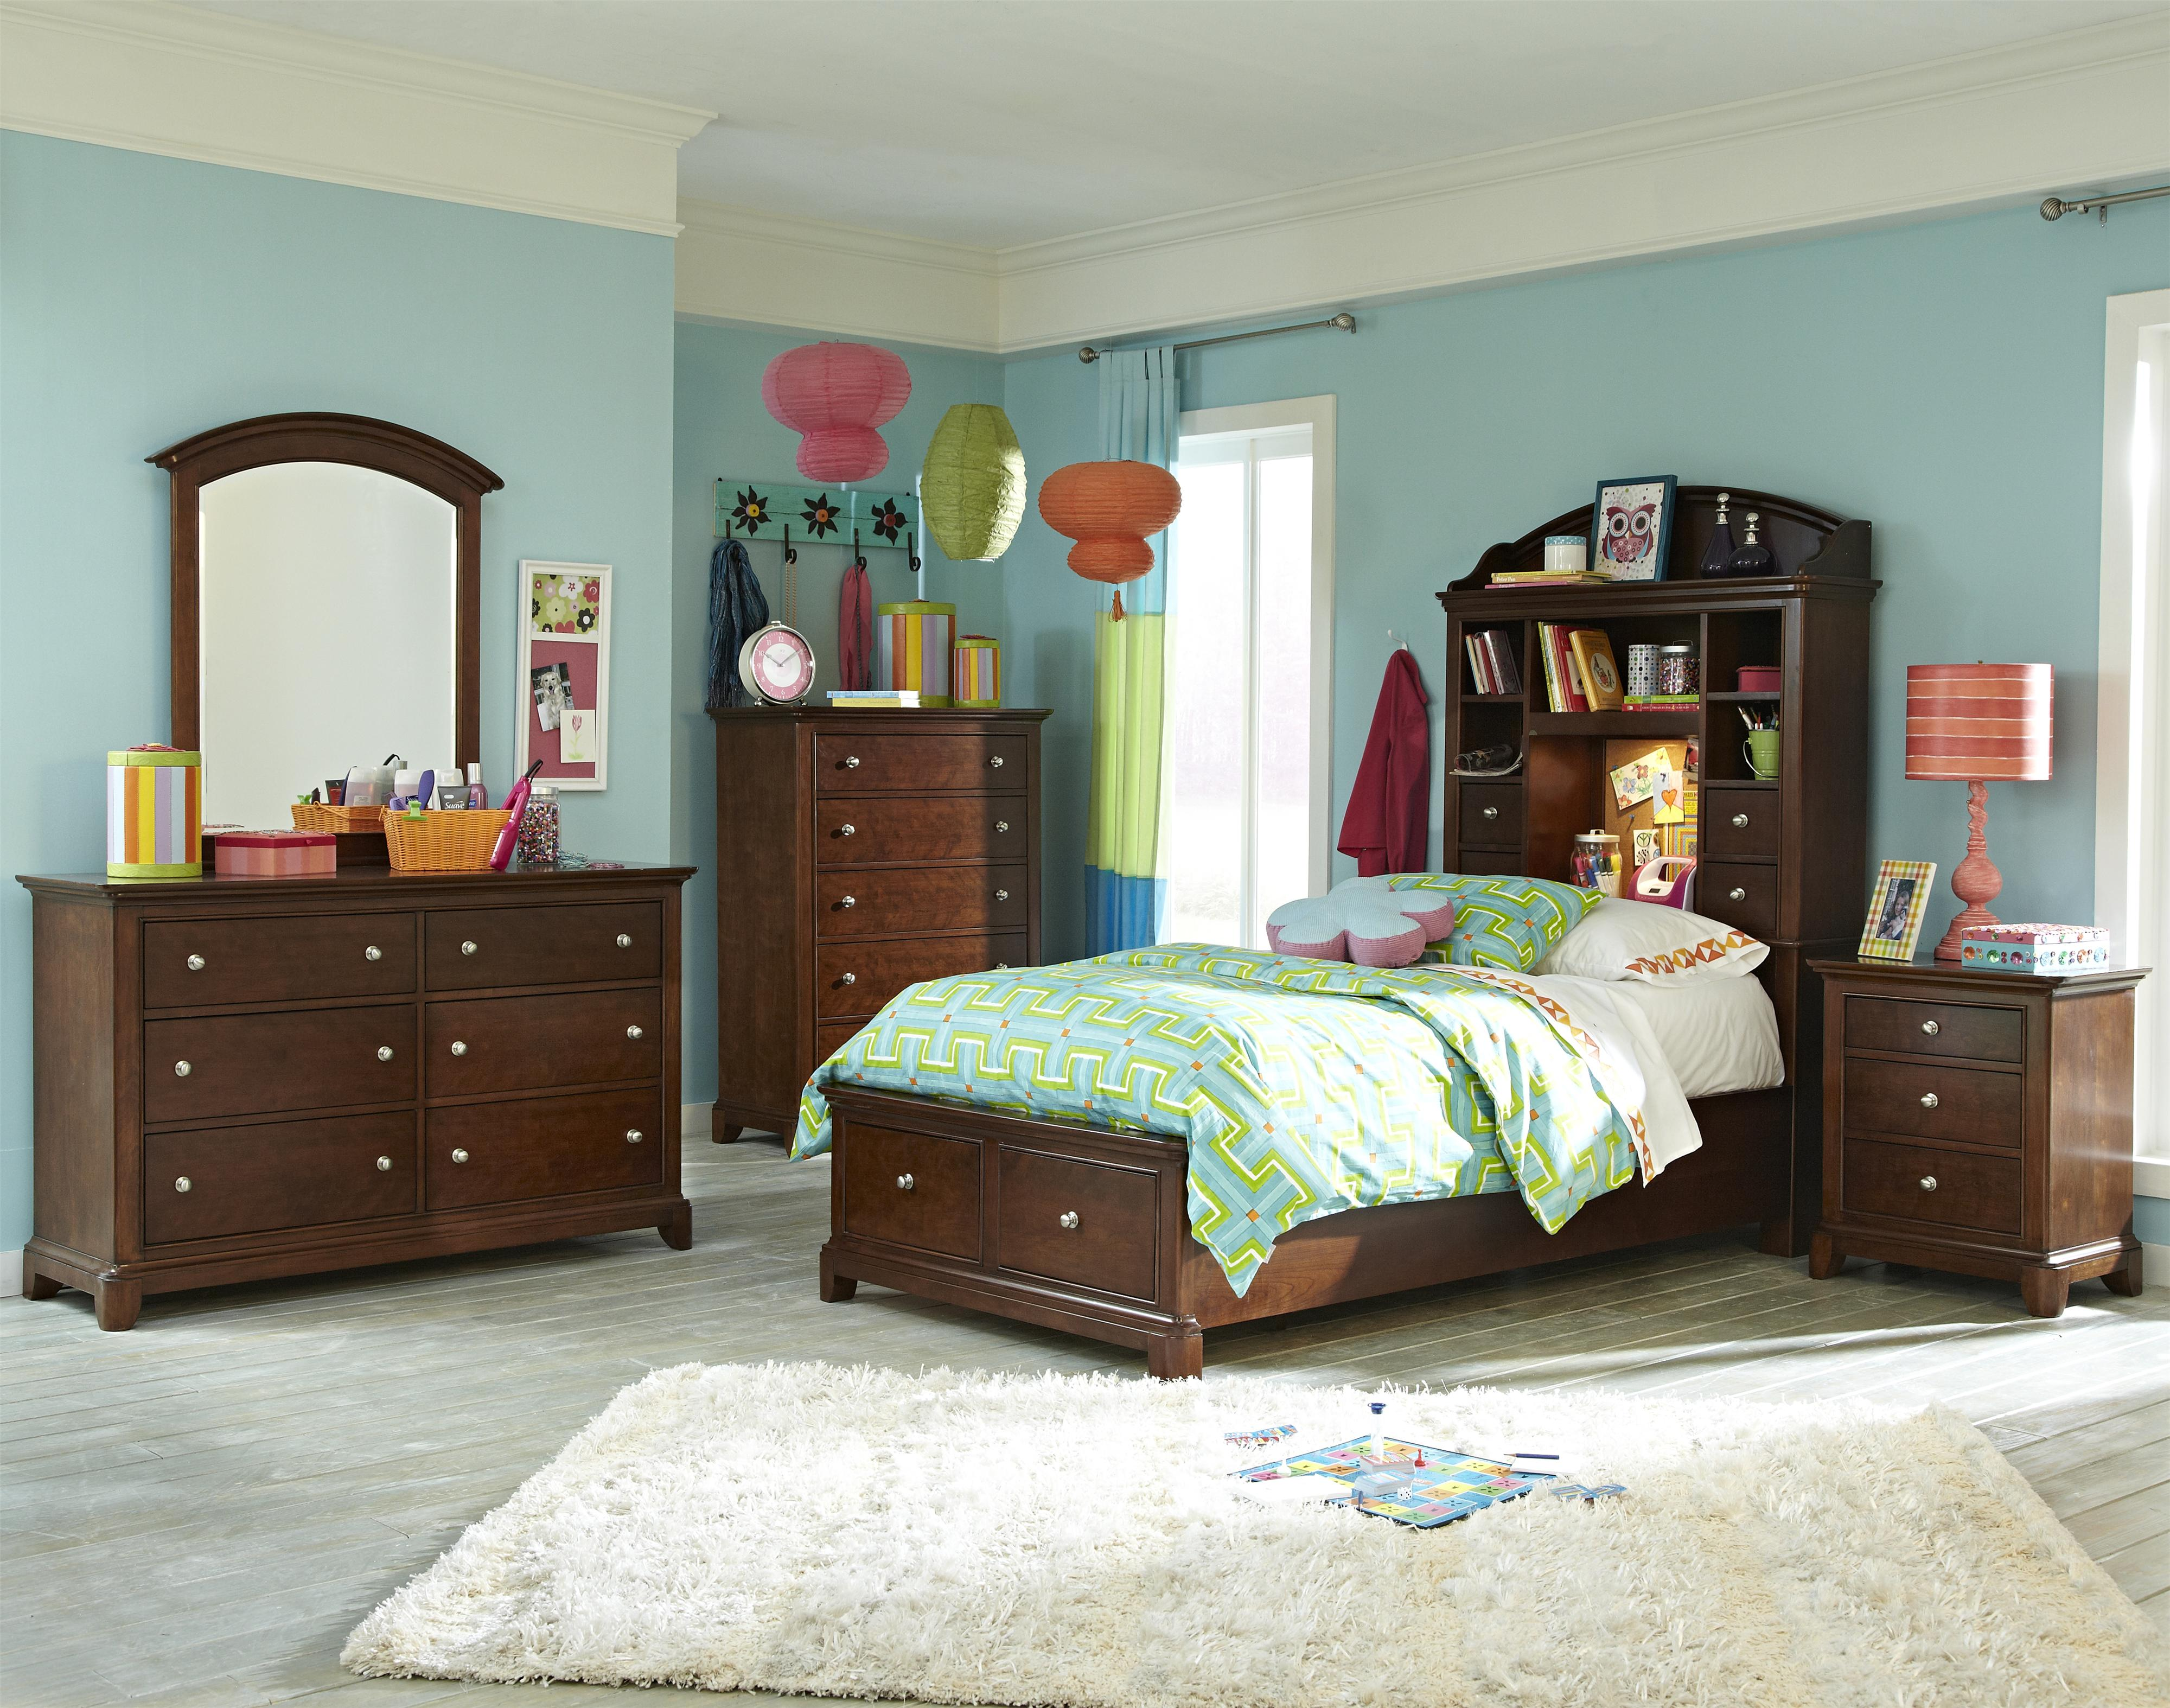 Legacy Classic Kids Impressions Full Bedroom Group - Item Number: 2880 F Bedroom Group 3